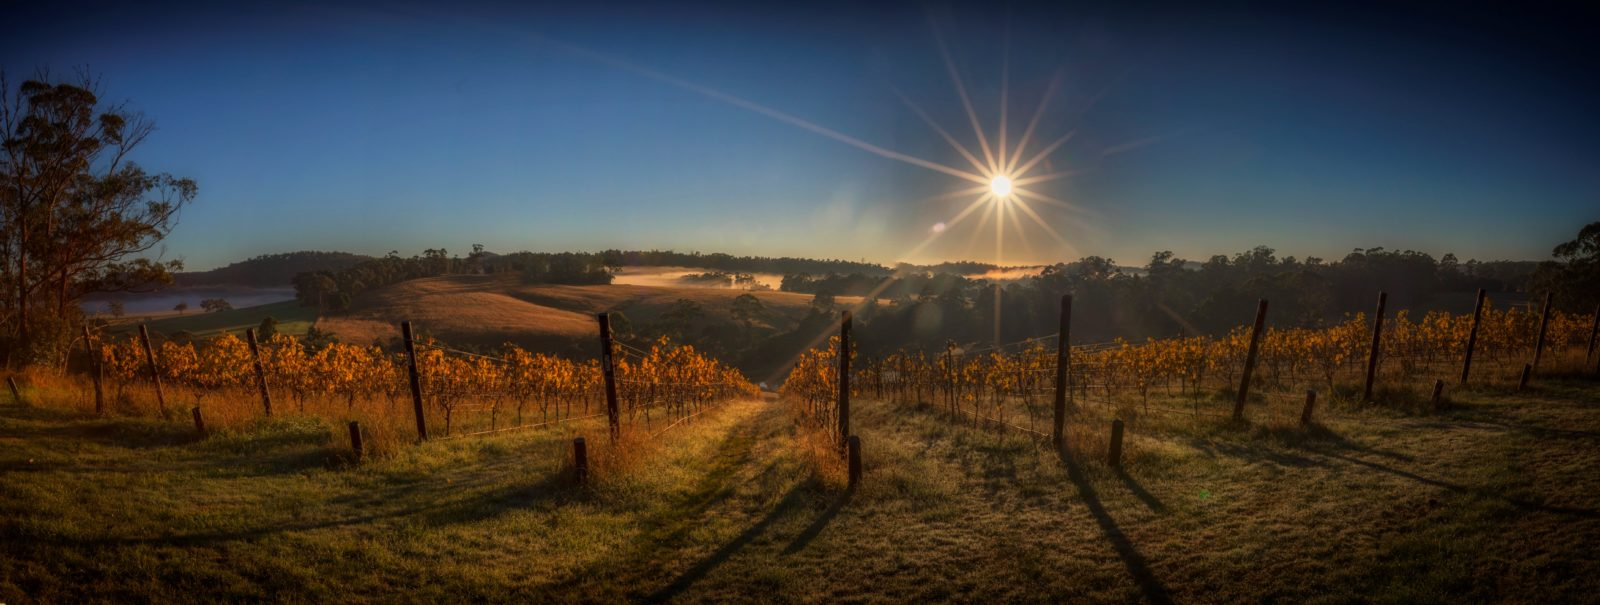 autumn Sunrise over Priory Ridge Vineyard